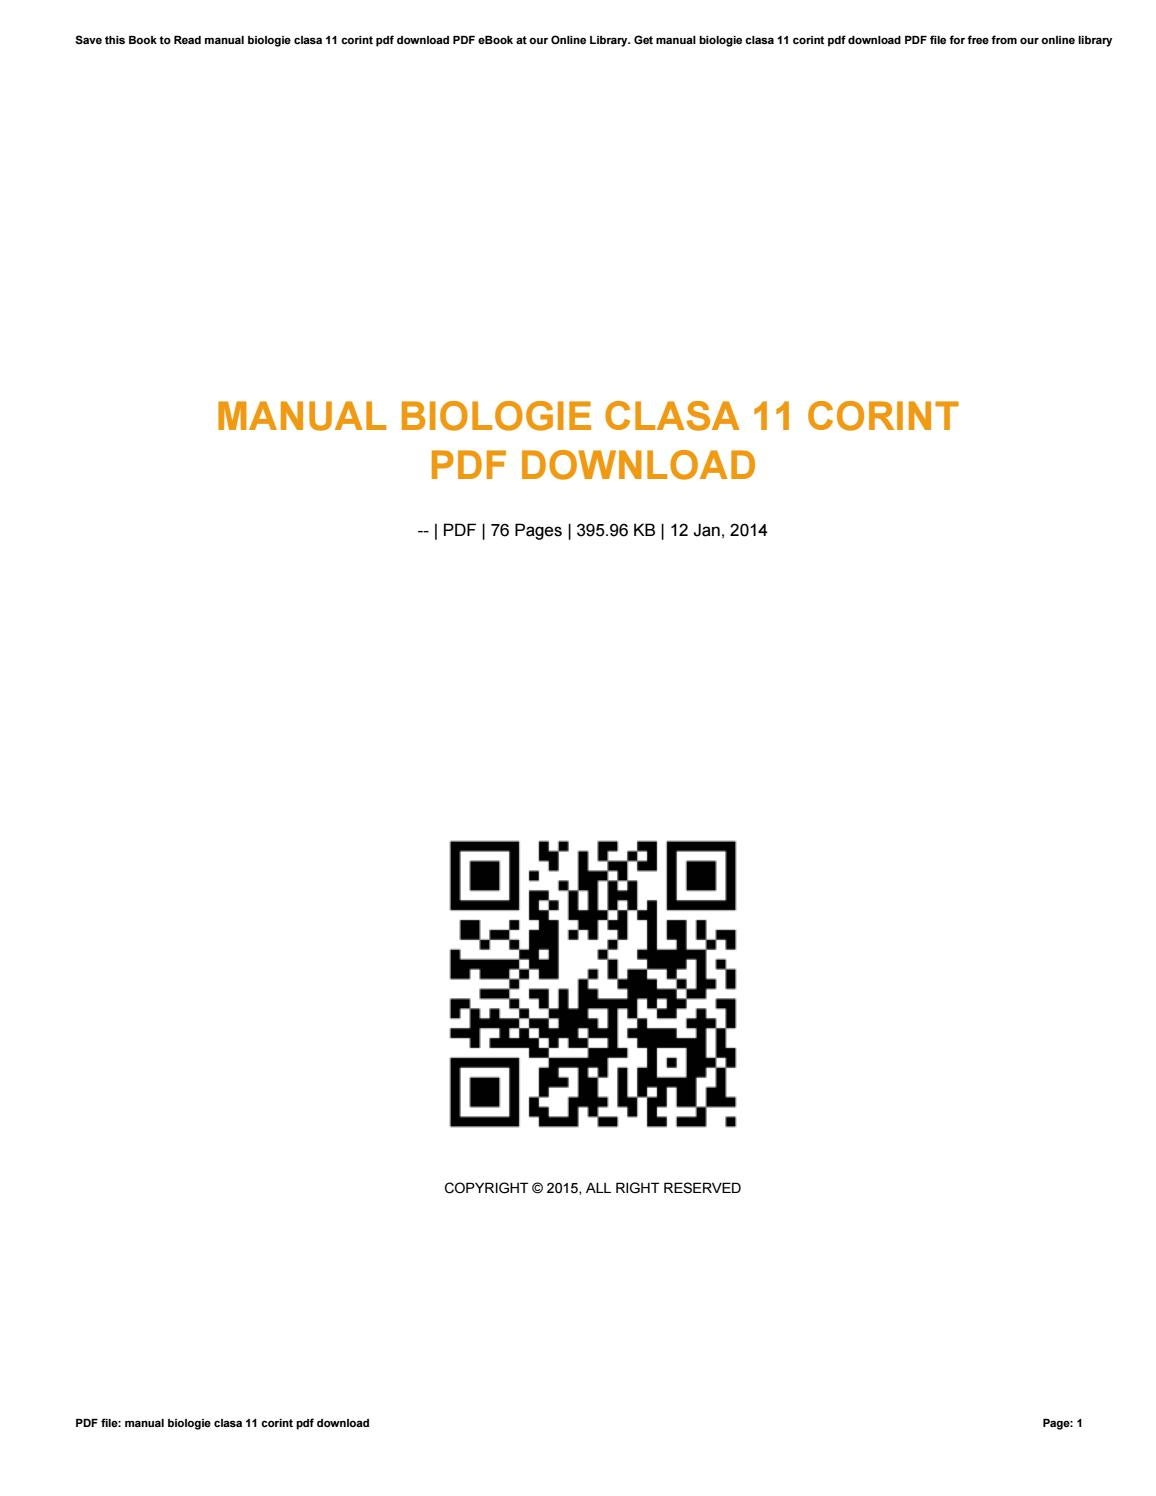 Manual biologie clasa 11 corint pdf download by